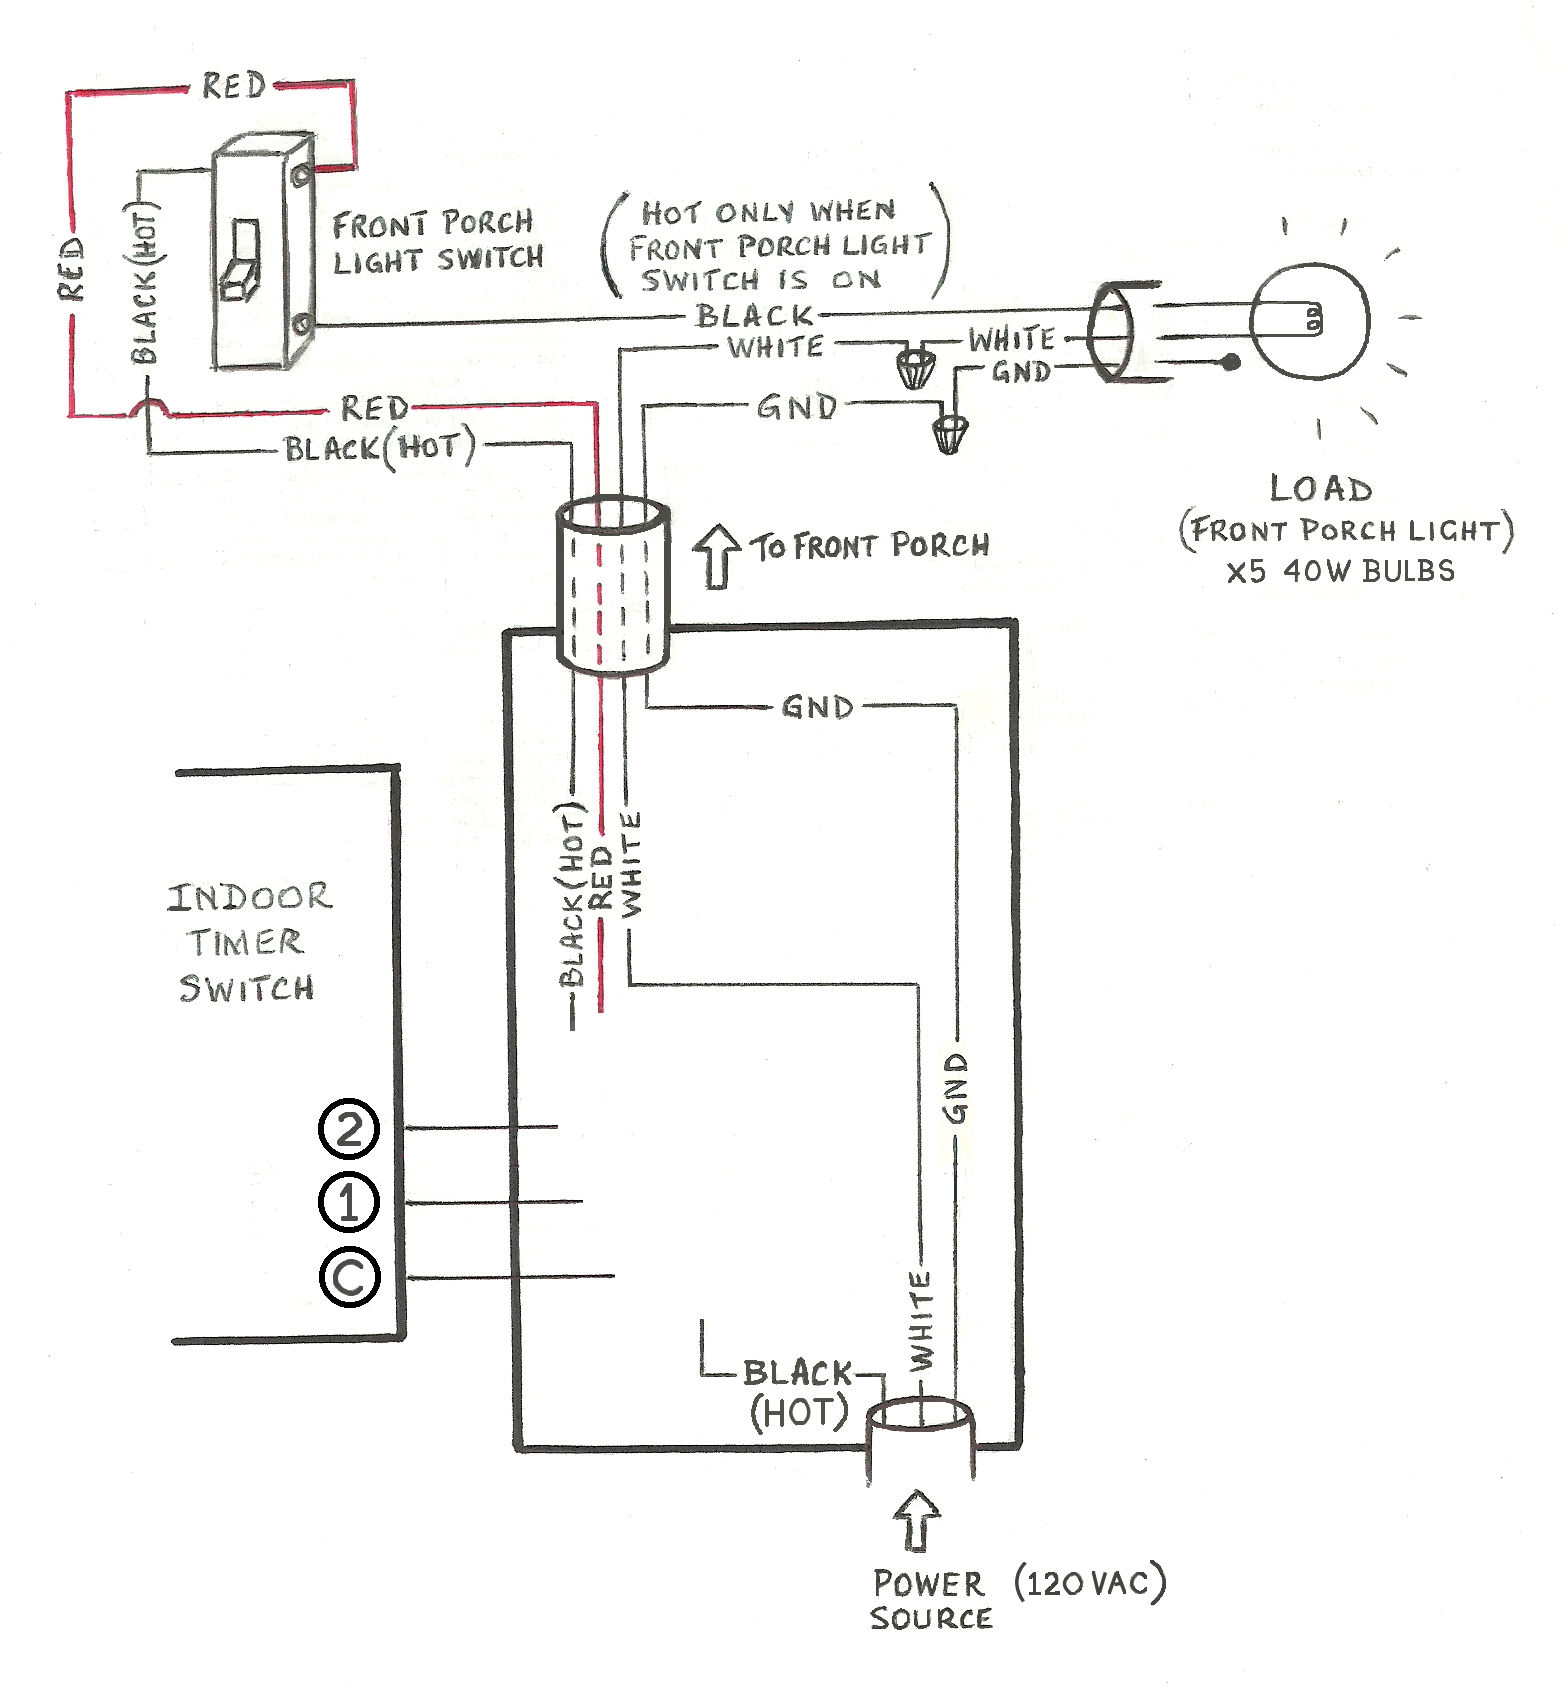 hight resolution of need help wiring a 3 way honeywell digital timer switch home wire diagram nursing digital wire diagram